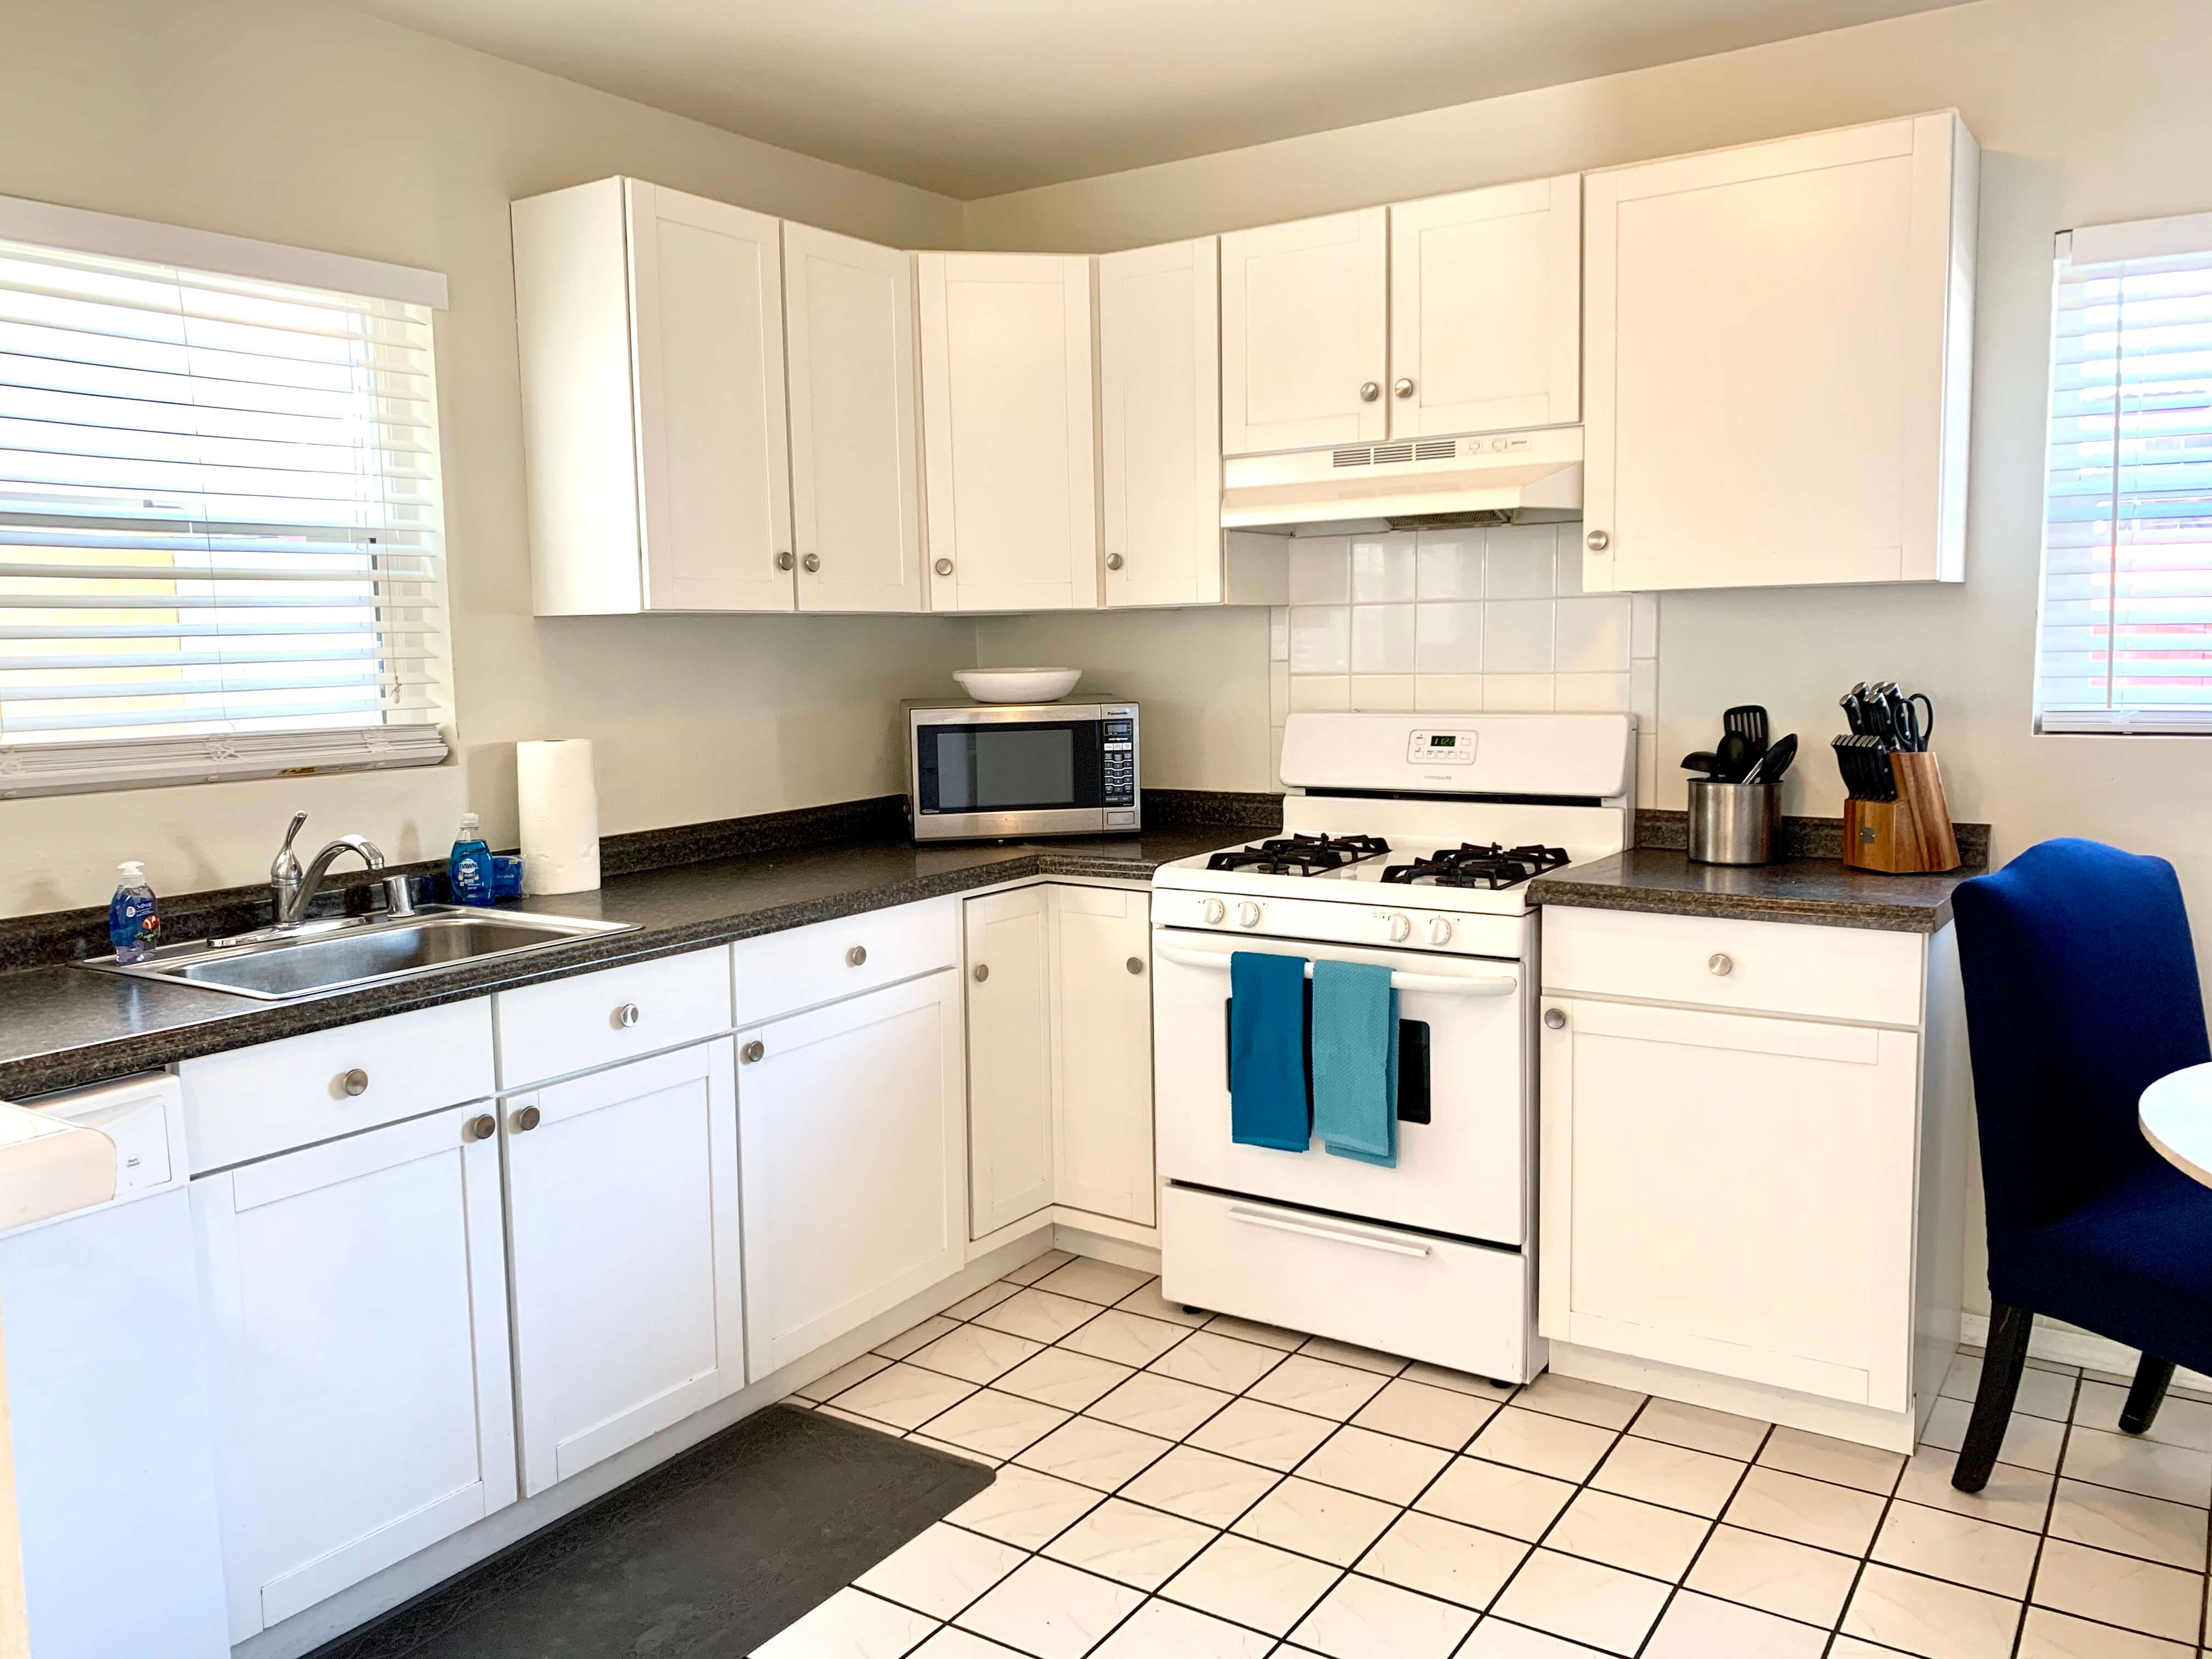 Full kitchen with modern appliances.